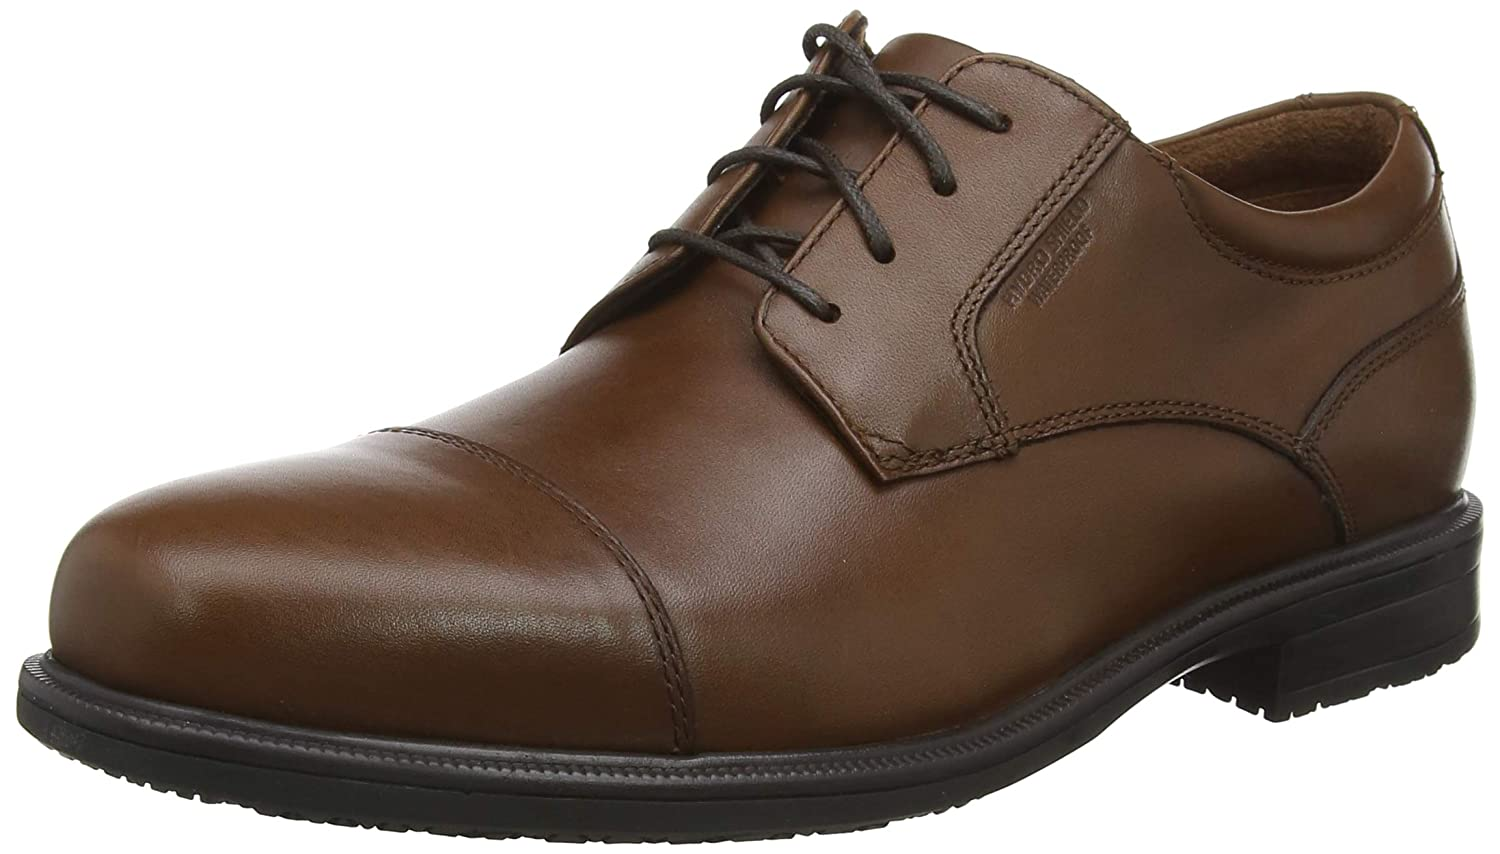 TALLA 43 EU. Rockport Esntial Dtlii Captoe Tan Antique Le, Zapatos de Cordones Oxford para Hombre